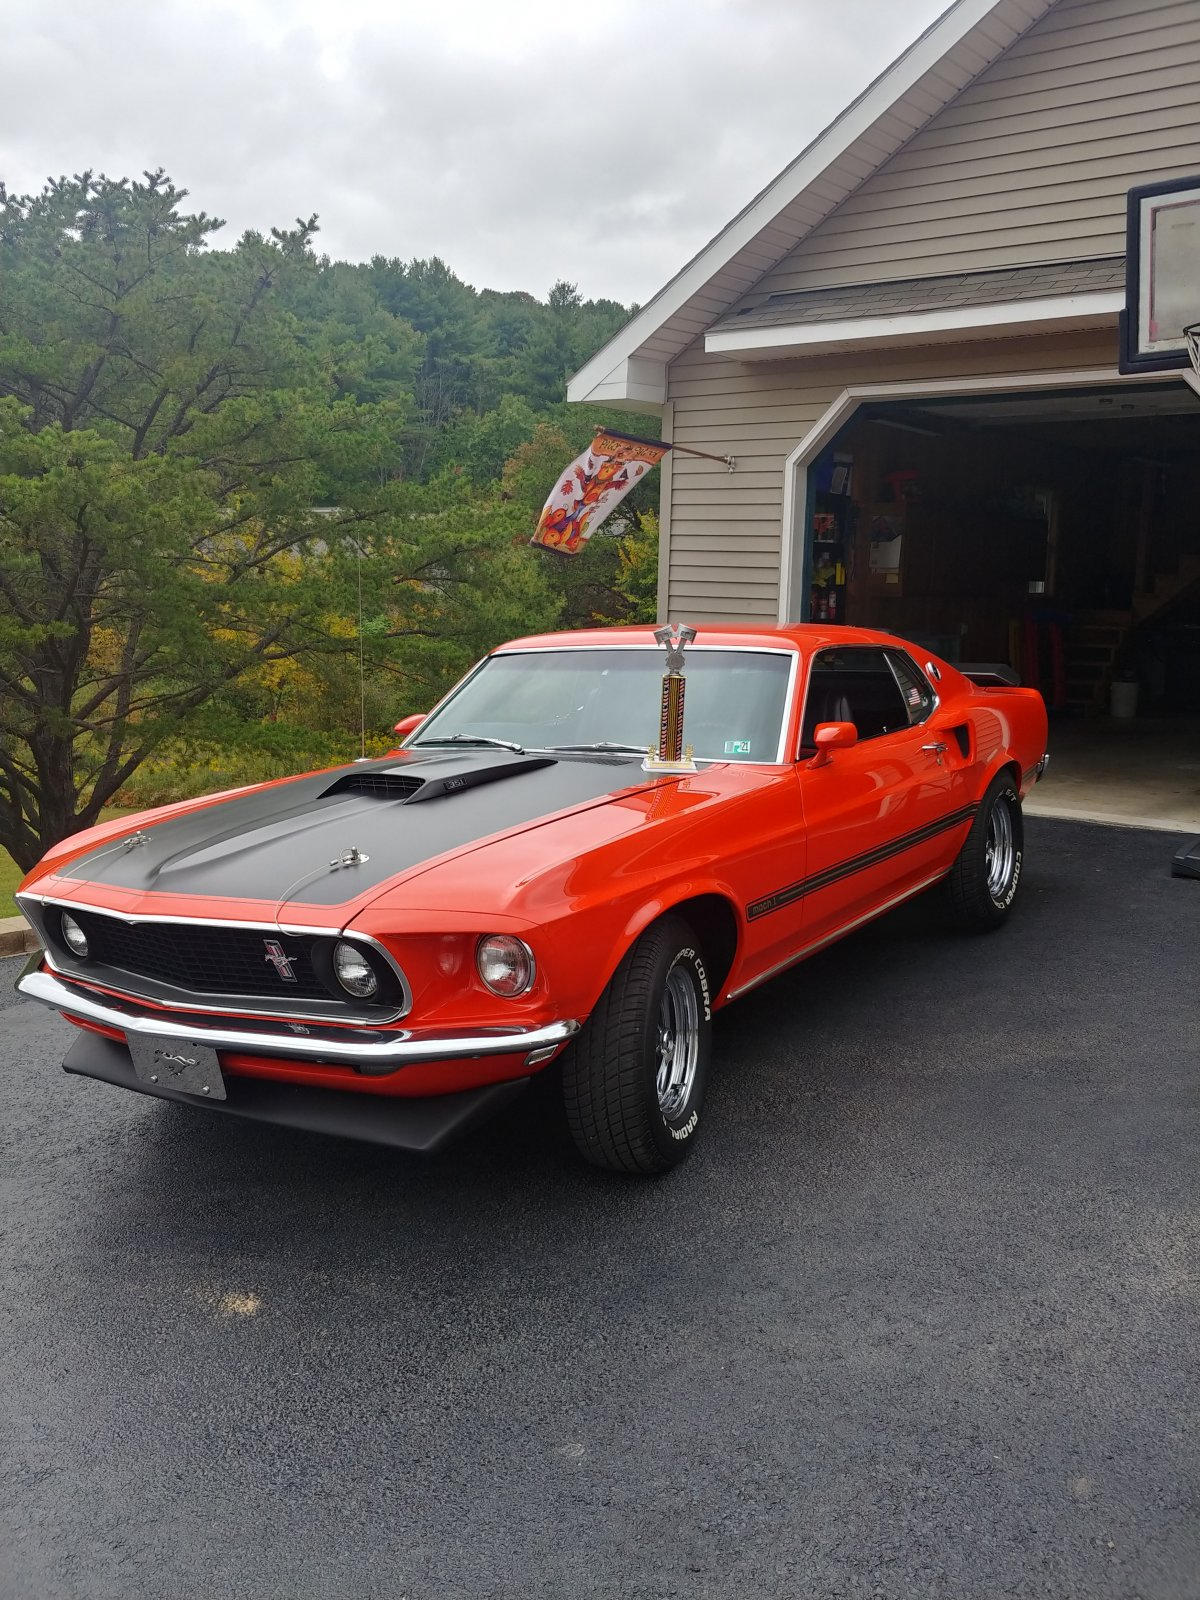 1969 Ford Mustang Mach 1 With a 480 HP 4.jpg